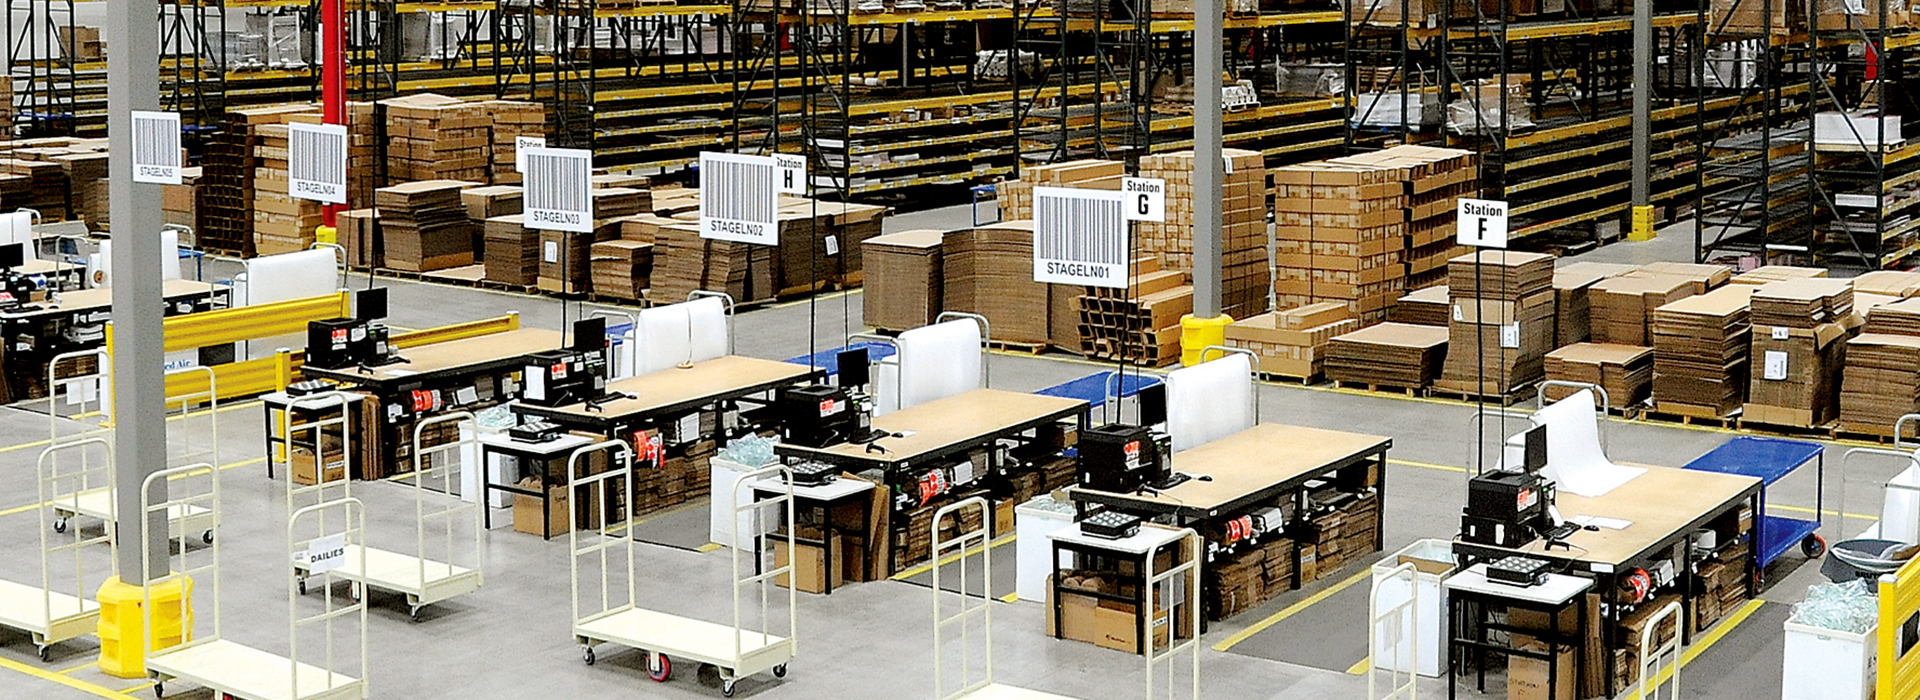 Interior of large warehousing kitting and fulfillment distribution center